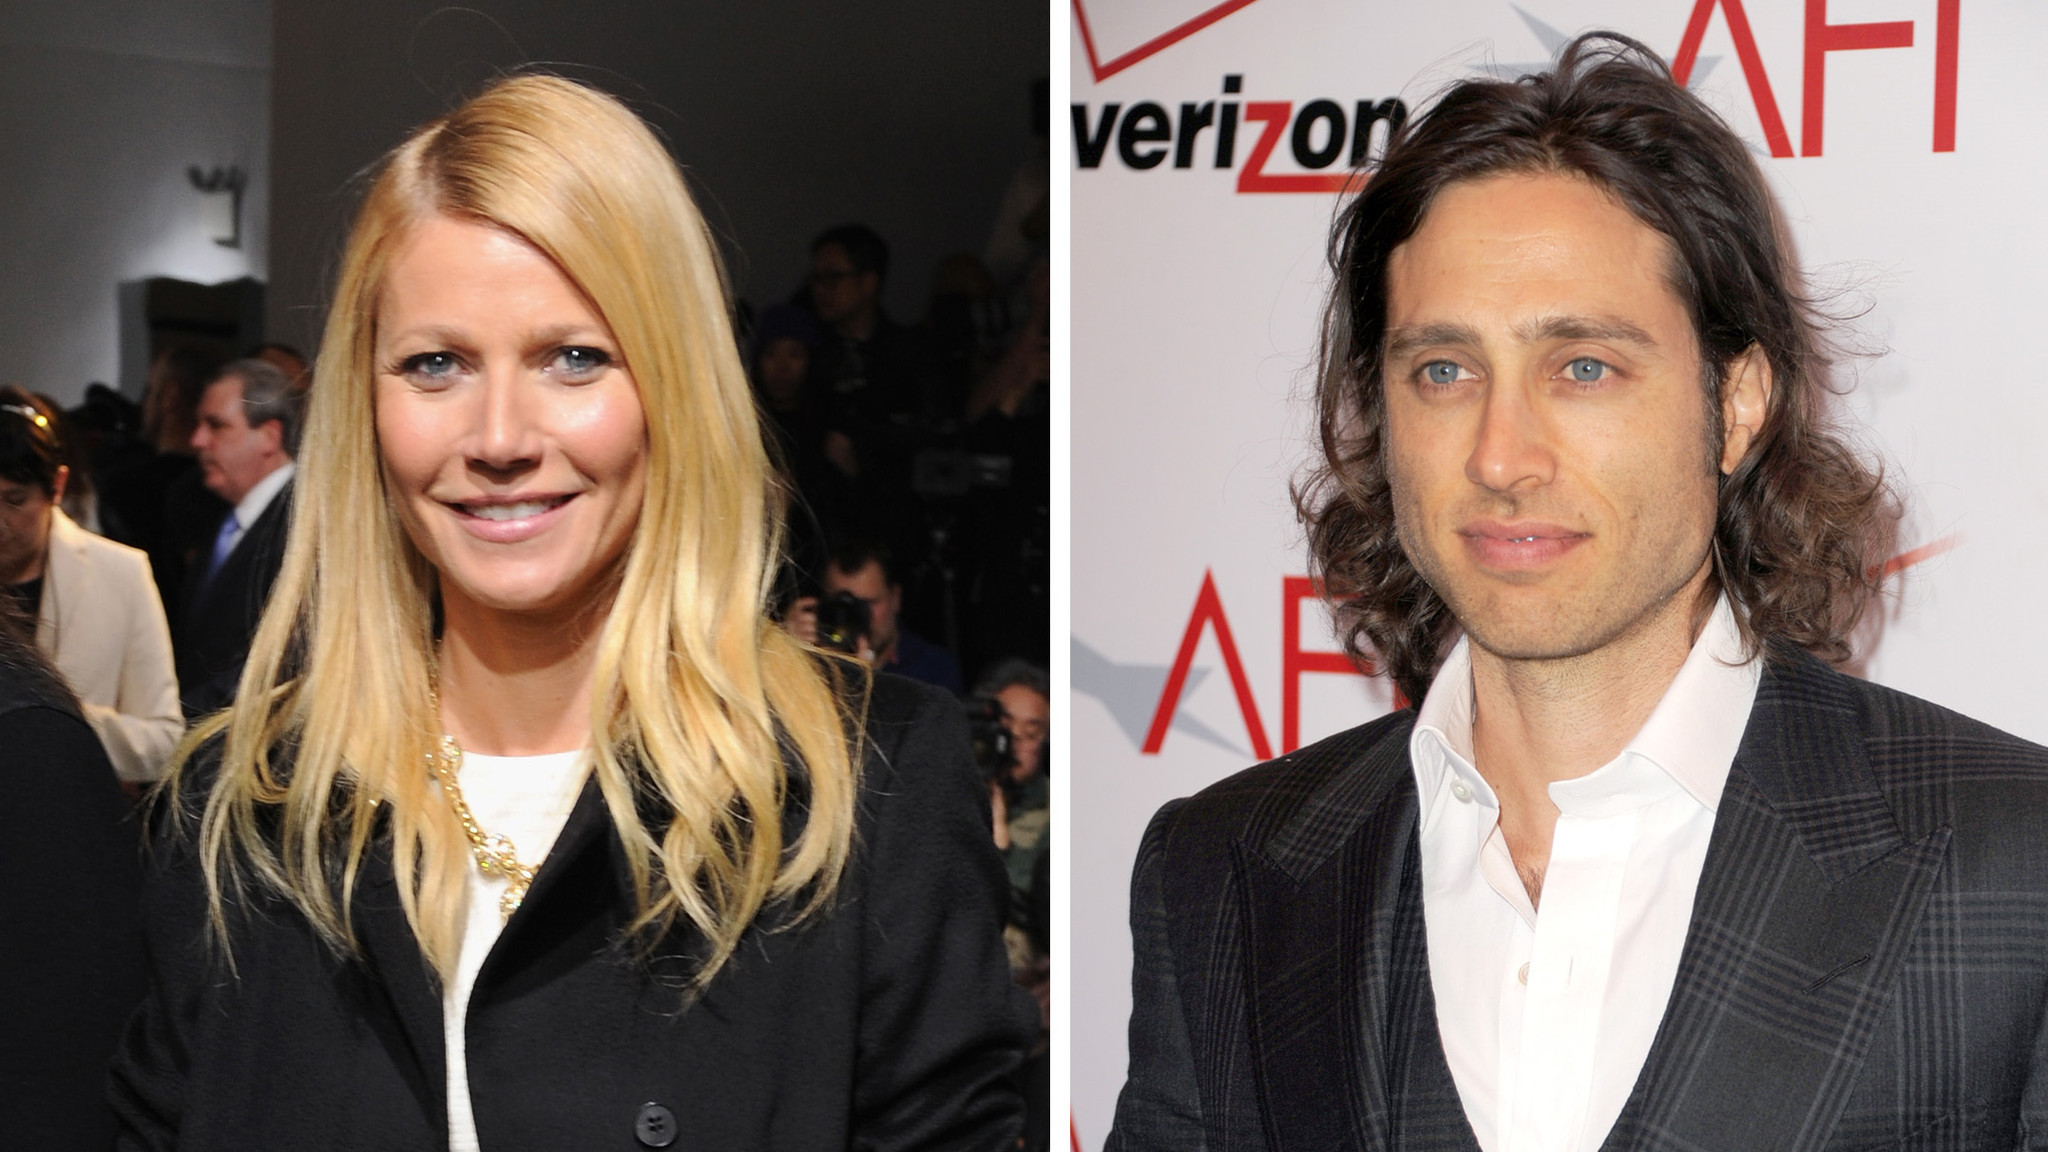 who is gwyneth dating Gwyneth paltrow has consciously coupled with her beau it has been reported that gwyneth is engaged to brad falchuk after three years of dating gwyneth, 45, met tv producer falchuk.